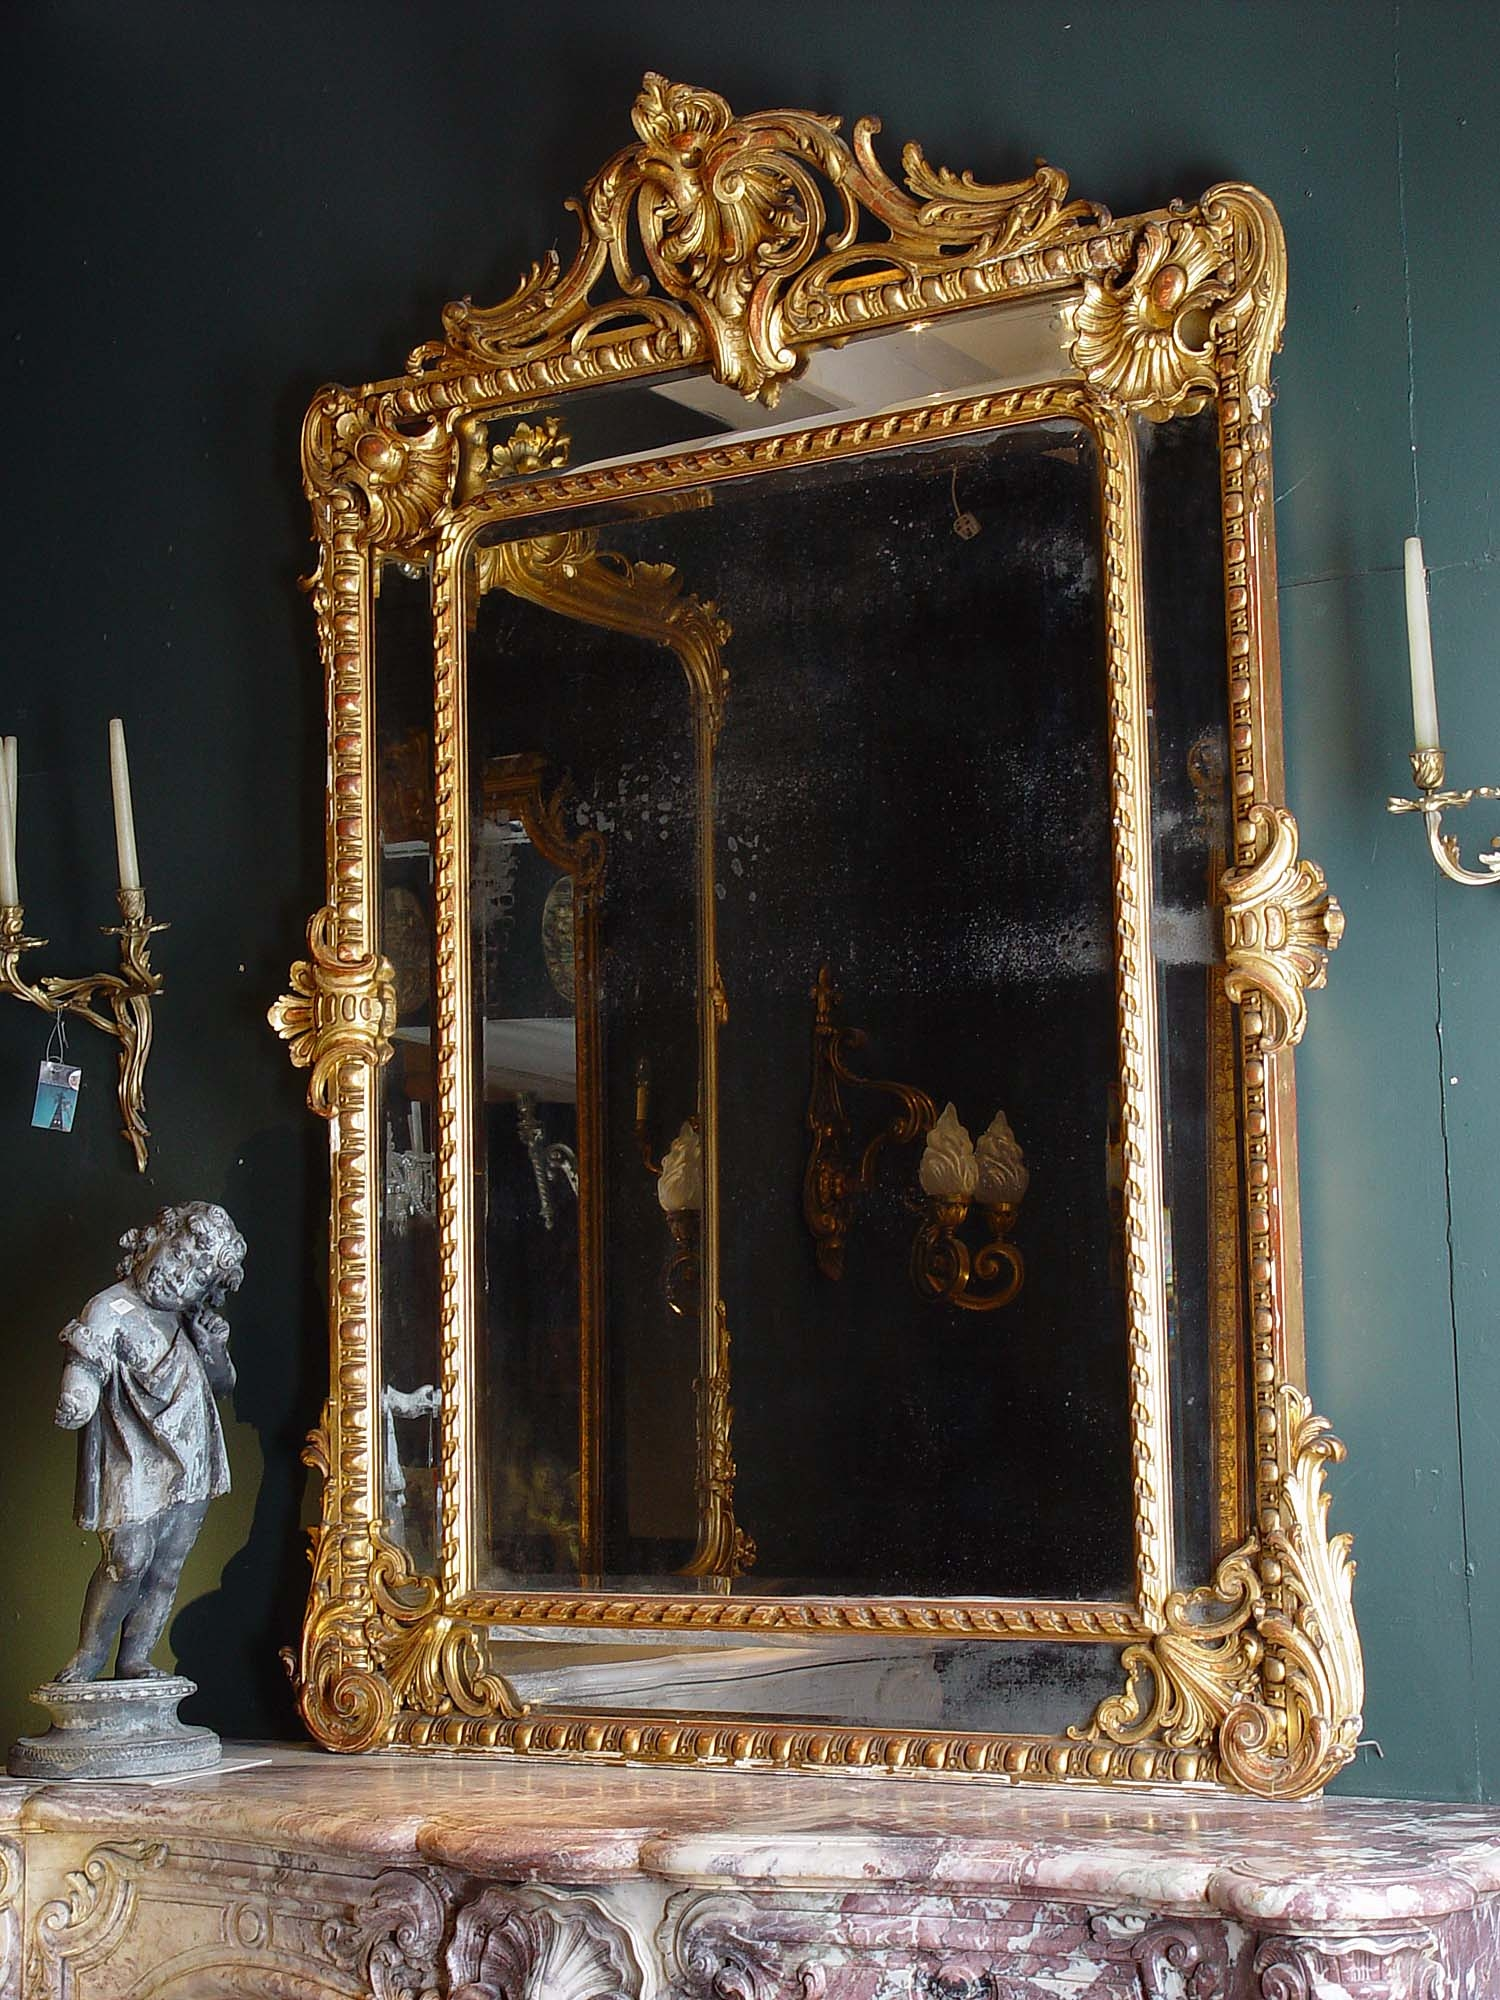 Big Mirrors For Sale 38 Cool Ideas For Mirror Harpsoundsco Pertaining To Large Antique Mirrors For Sale (Image 5 of 15)